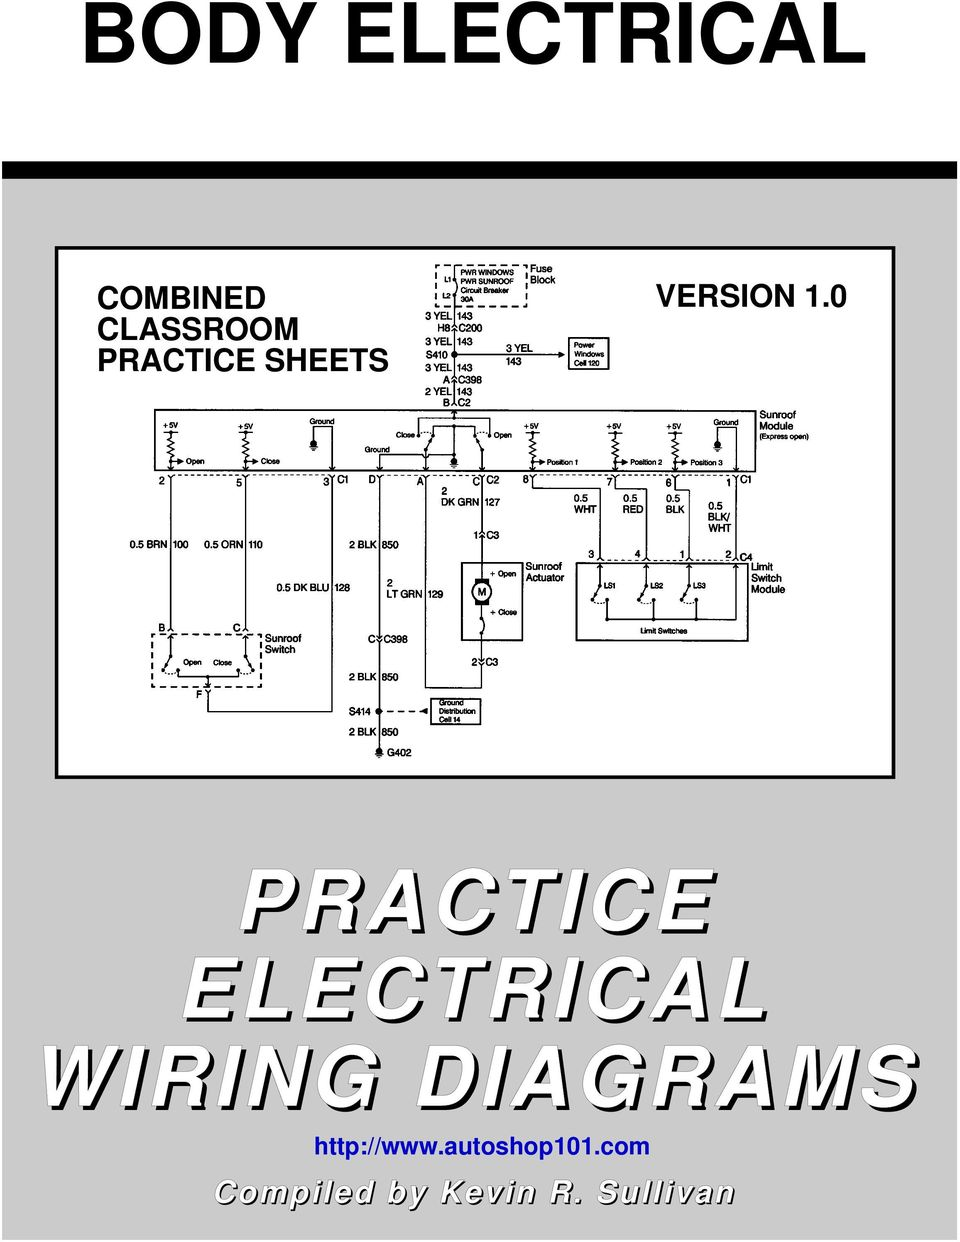 Practice electrical wiring diagrams pdf 0 practice electrical wiring diagrams cheapraybanclubmaster Gallery